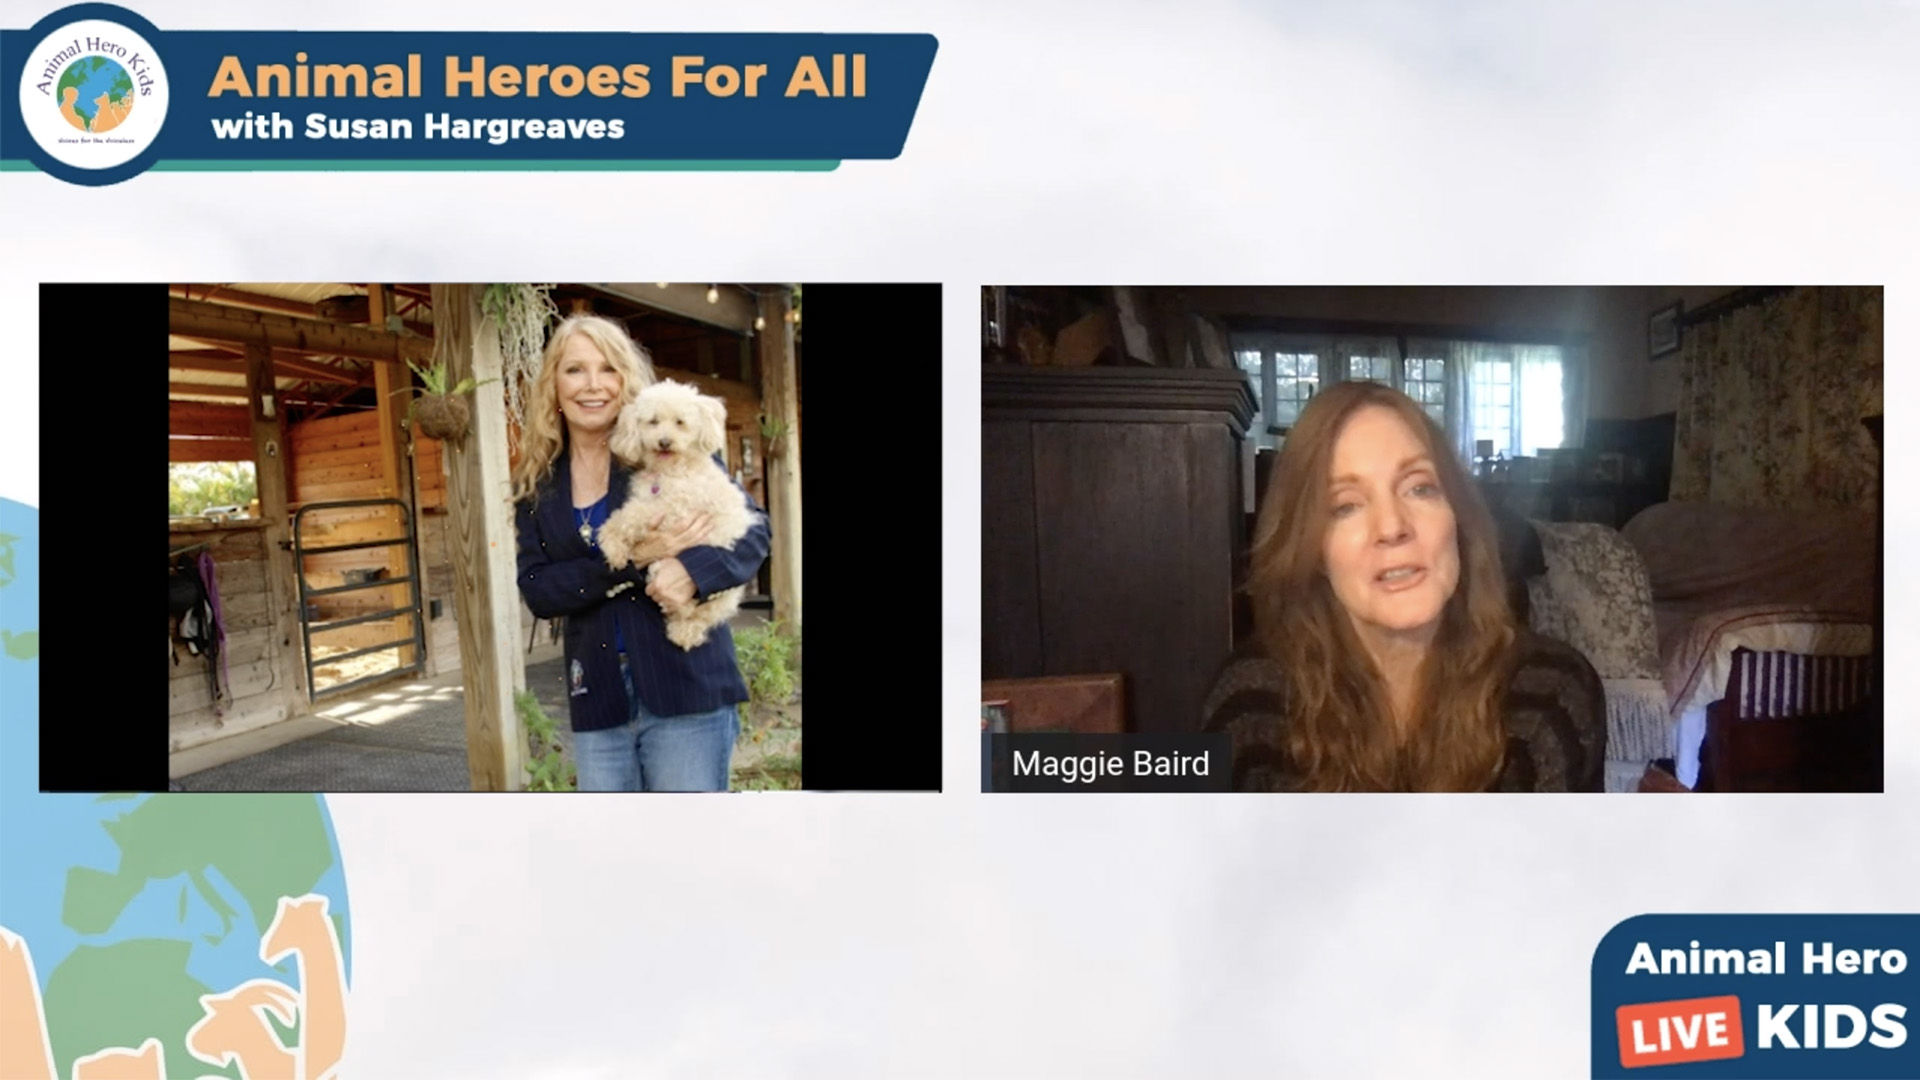 Animal Heroes for All